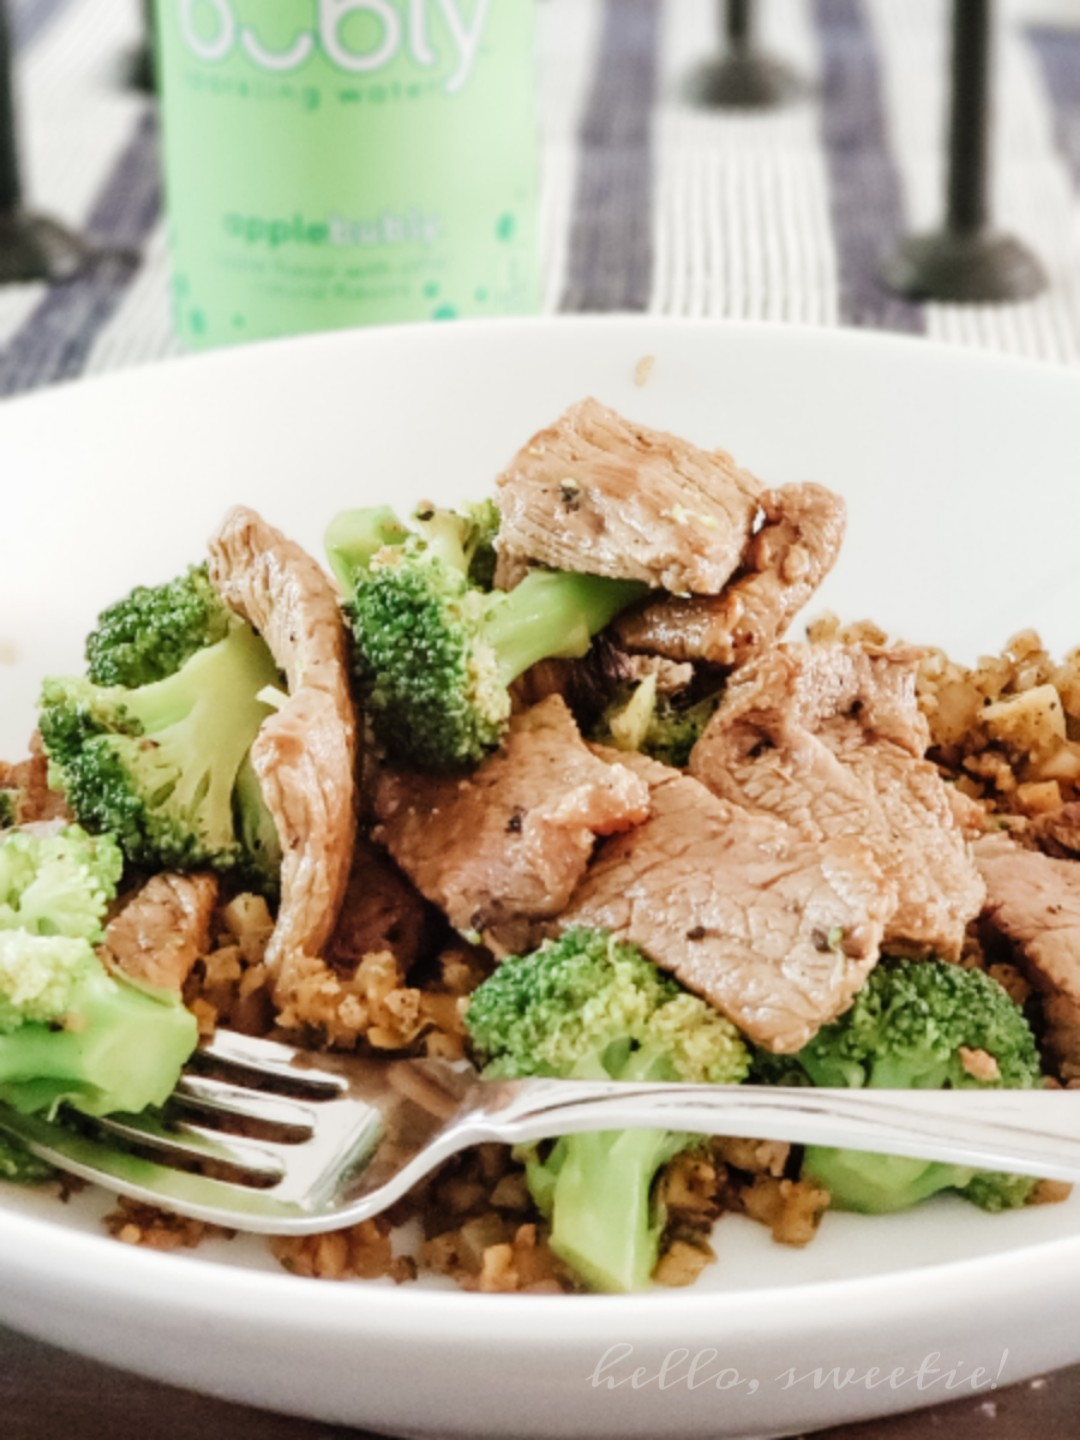 Quick and easy Beef and Broccoli is on the table in just 10 minutes!